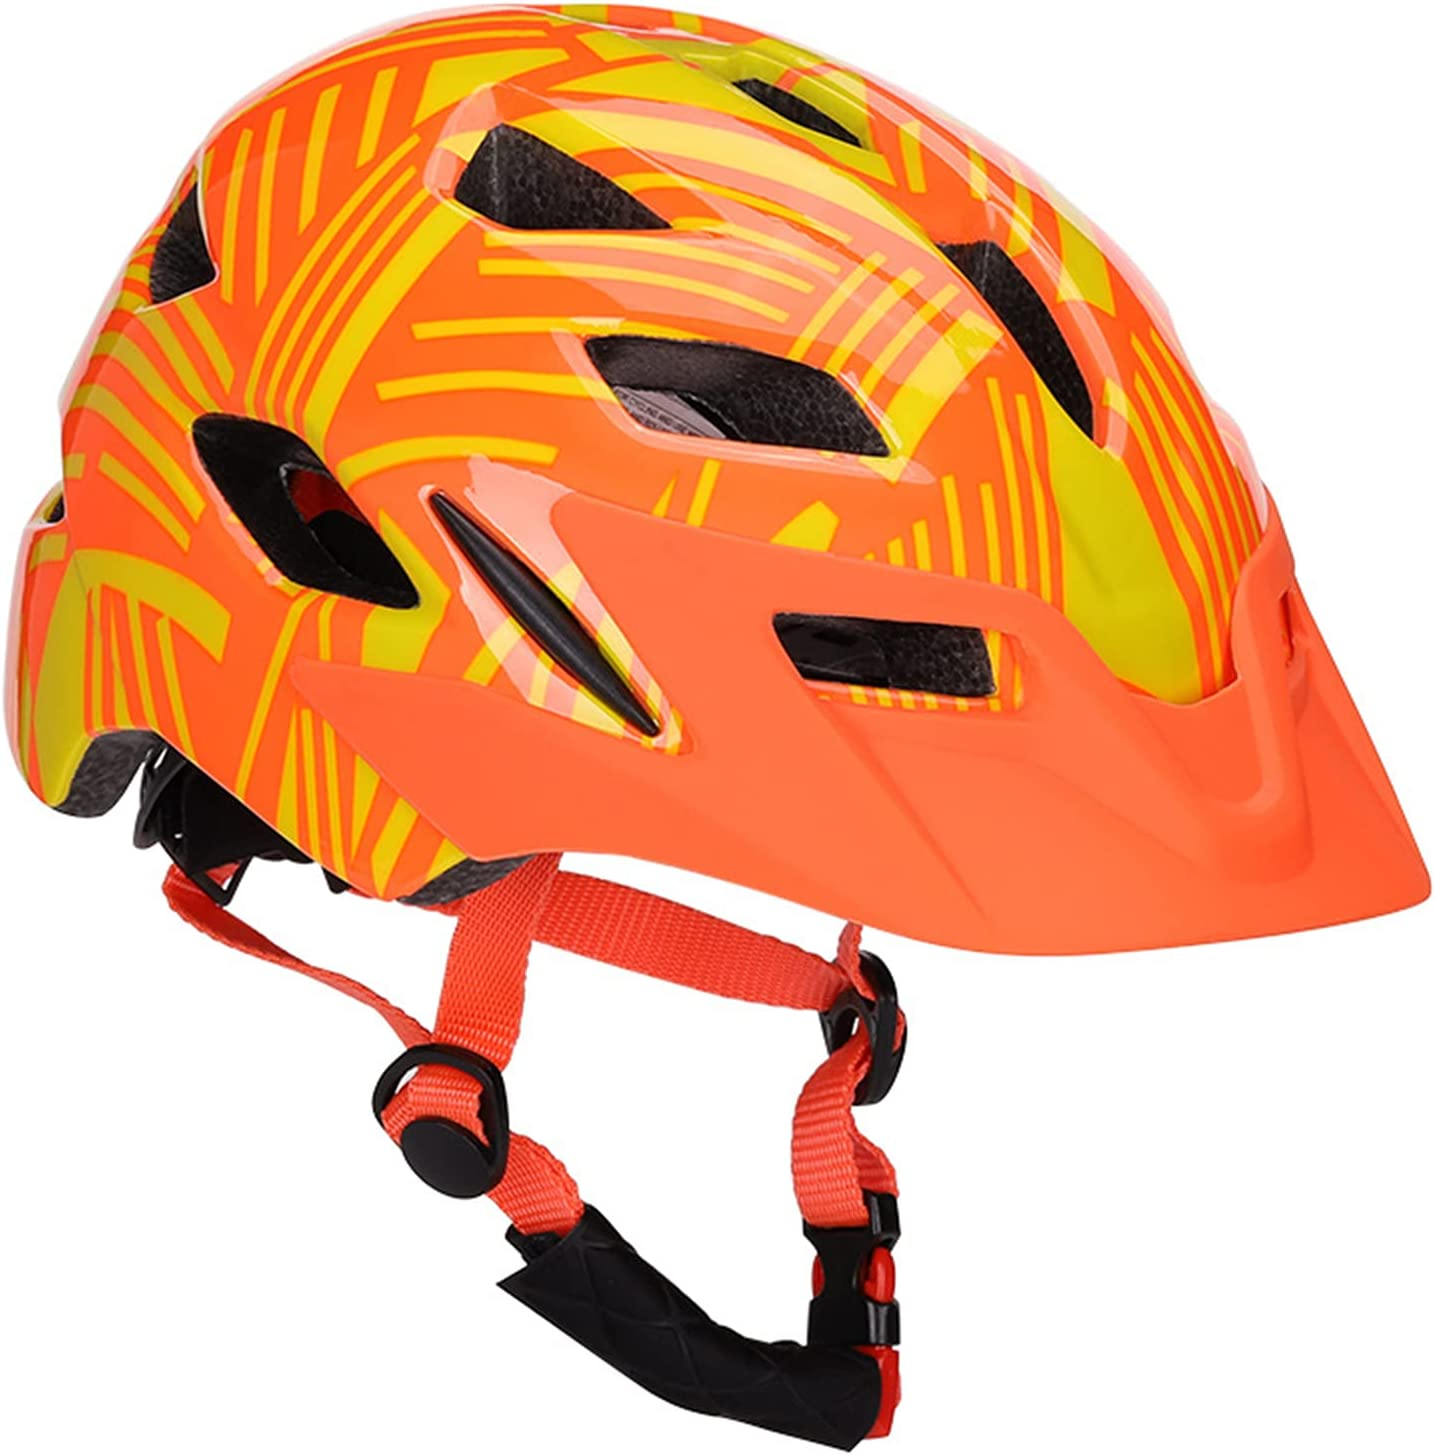 latest M-Y-L-Z Kids Bike Credence Helmet Lightweight He Skating Cycling Scooter